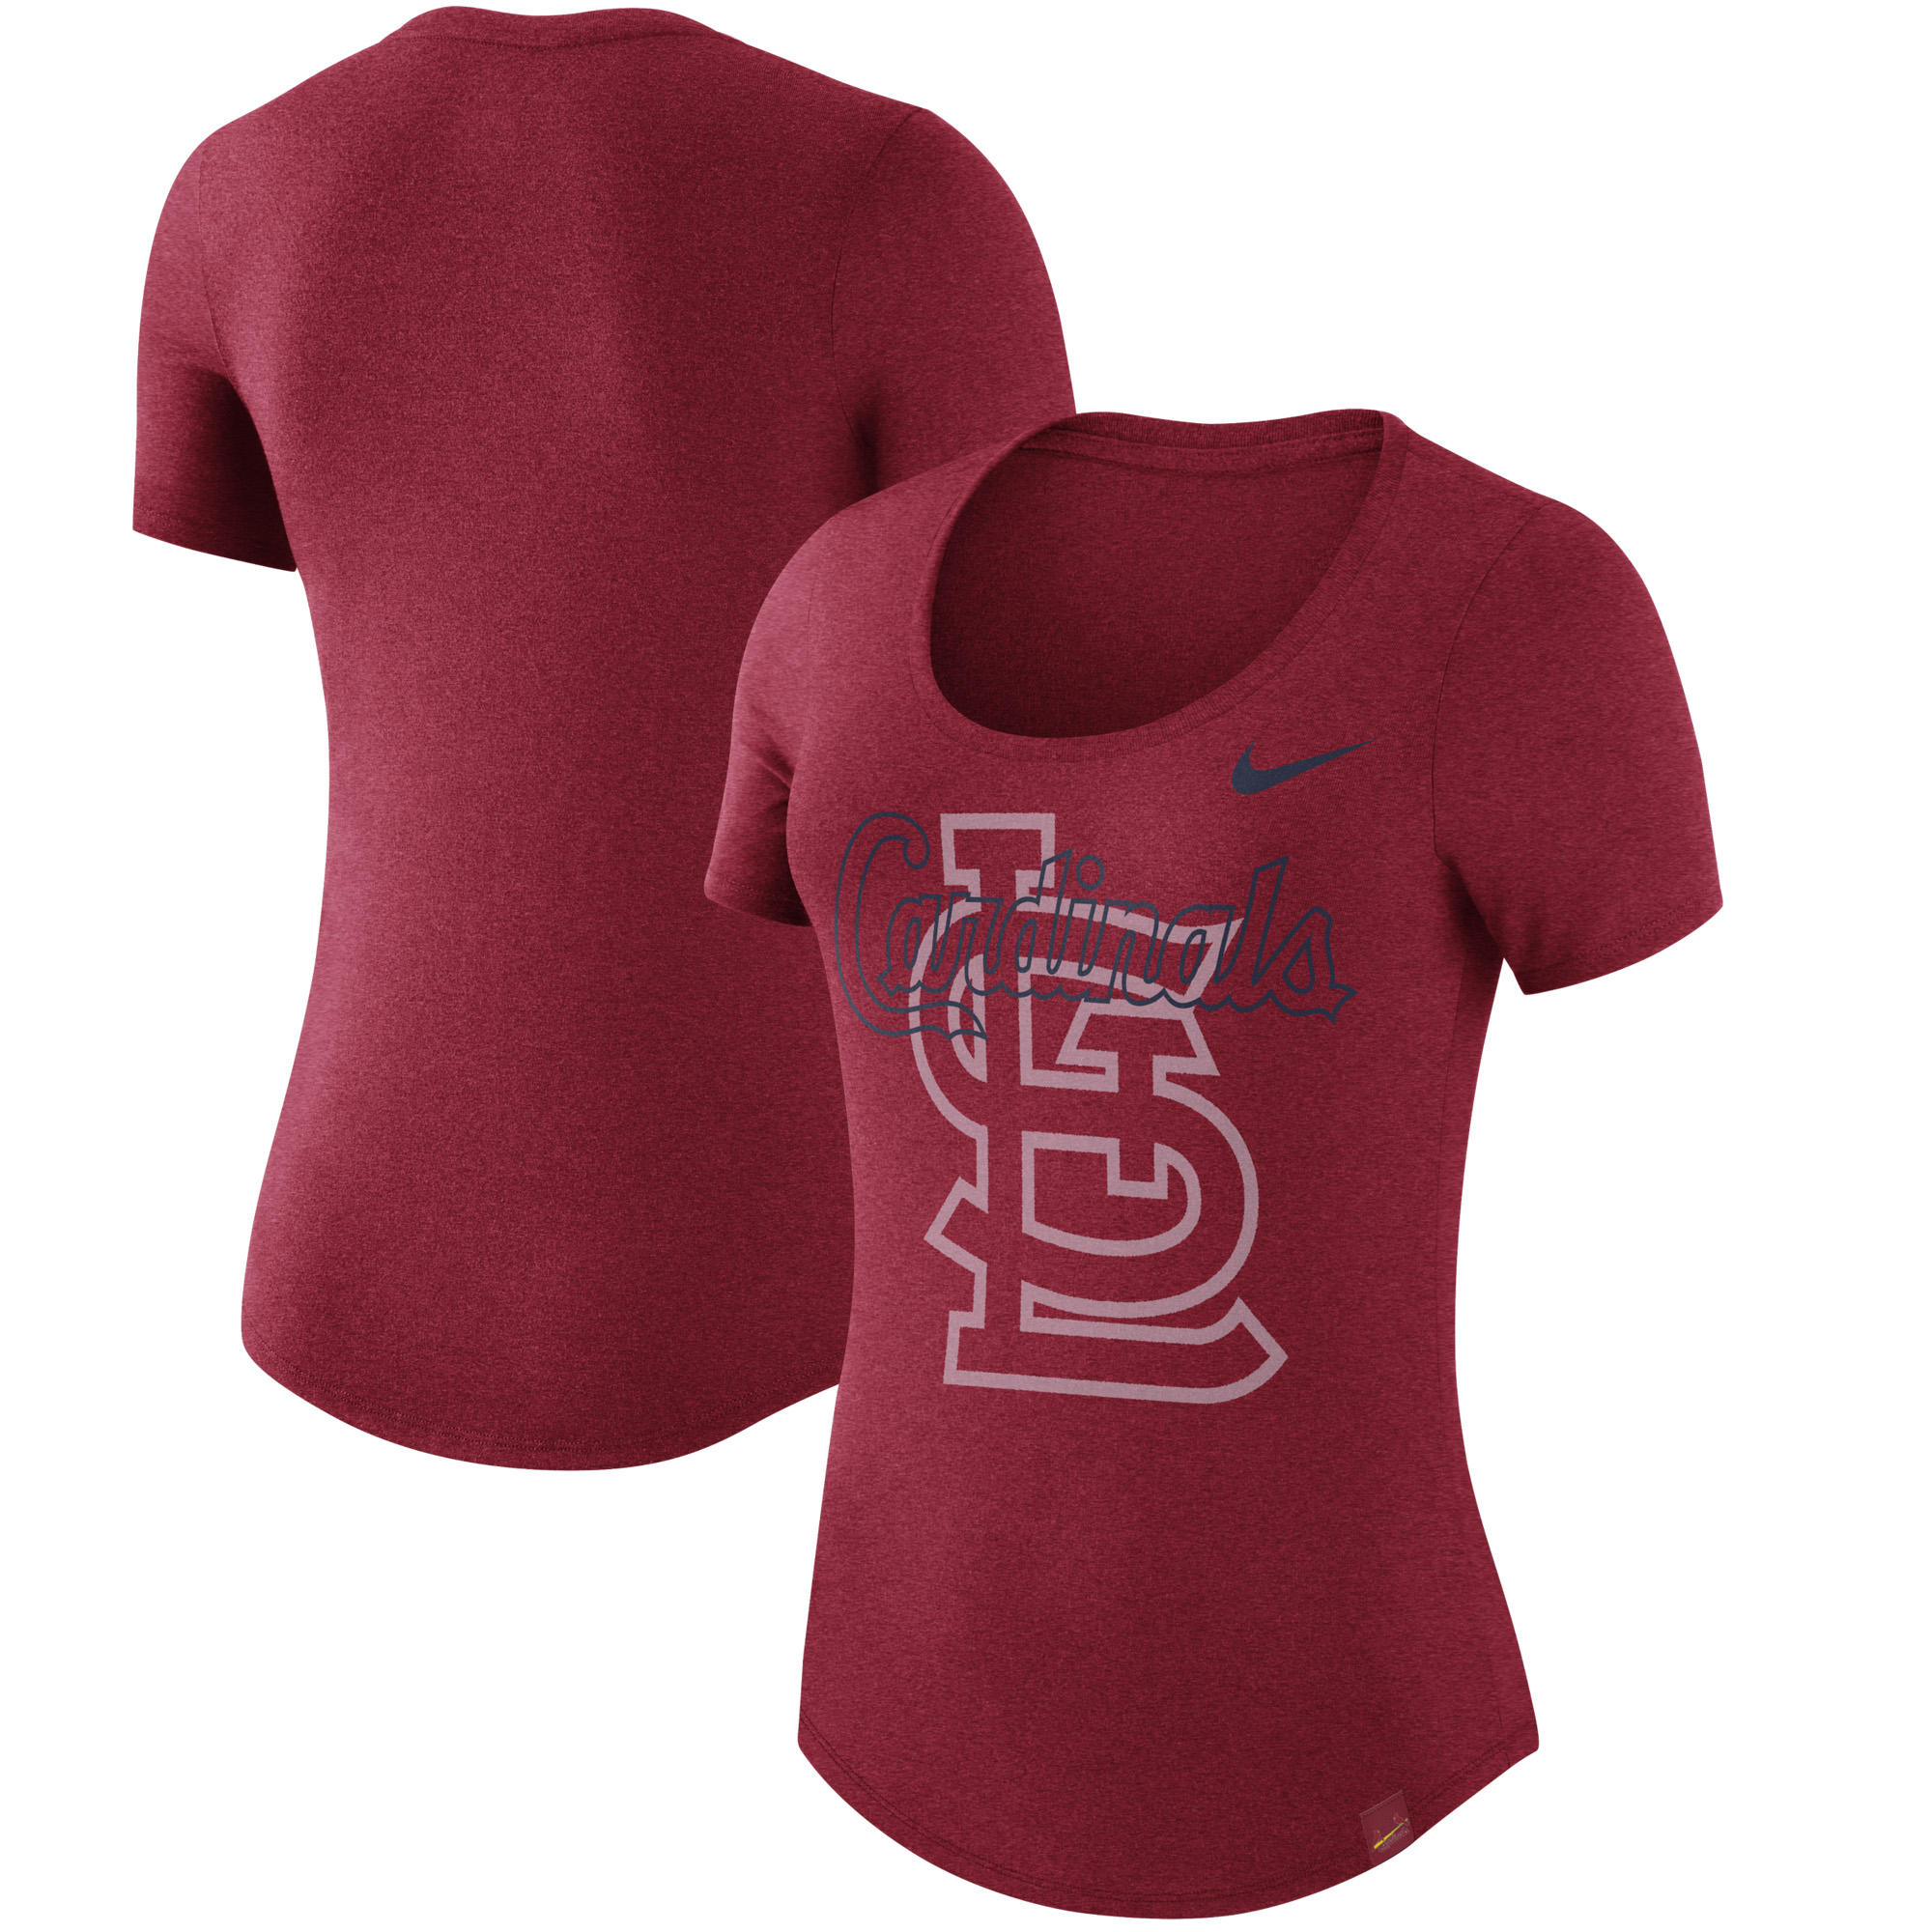 St. Louis Cardinals Nike Women's Burnout Scoop Neck Performance T-Shirt - Heathered Red